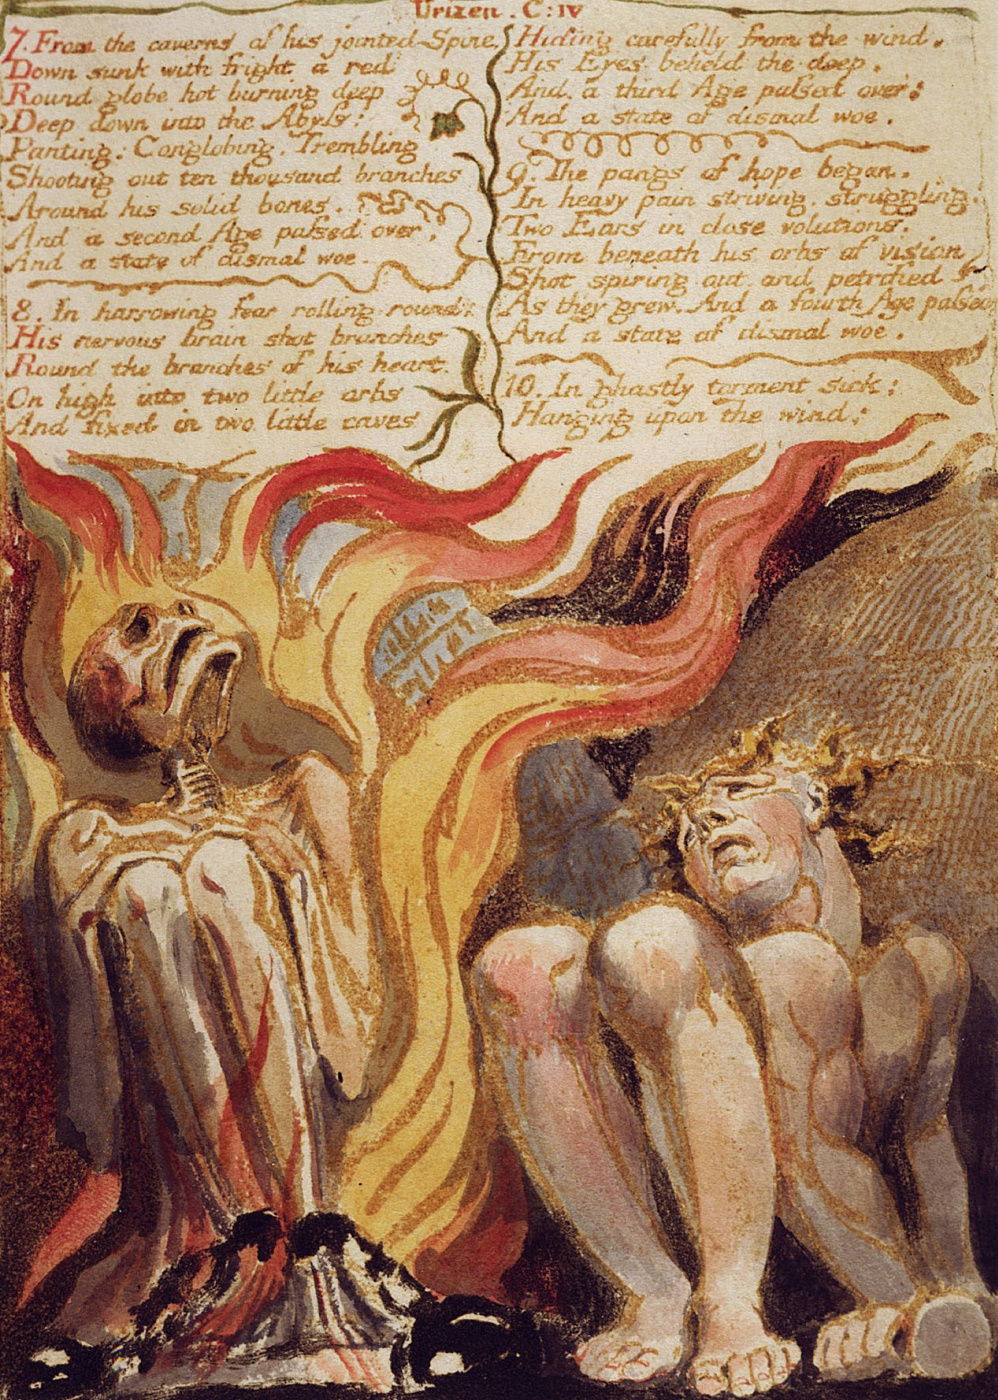 William Blake. The first book Urizen. Los and Urizen in chains and flames